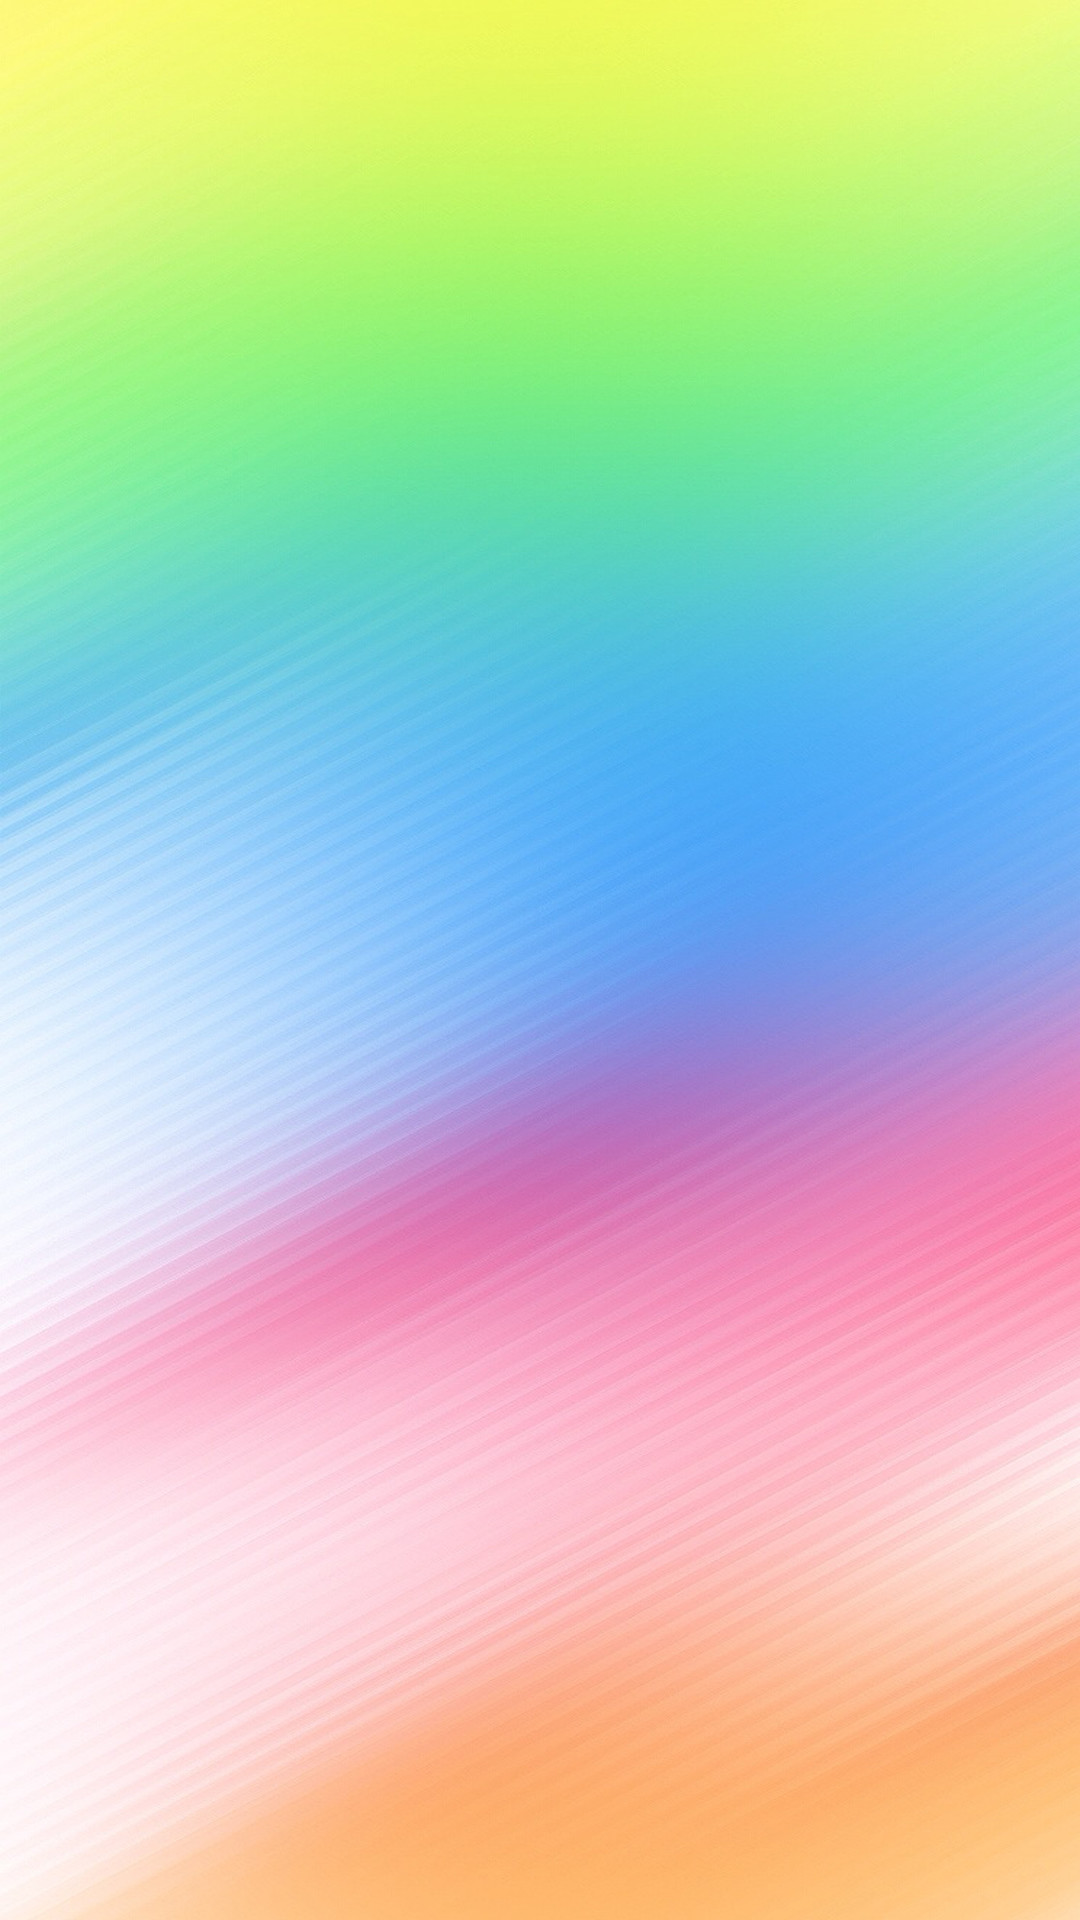 Download iOS 8 Wallpapers for Android